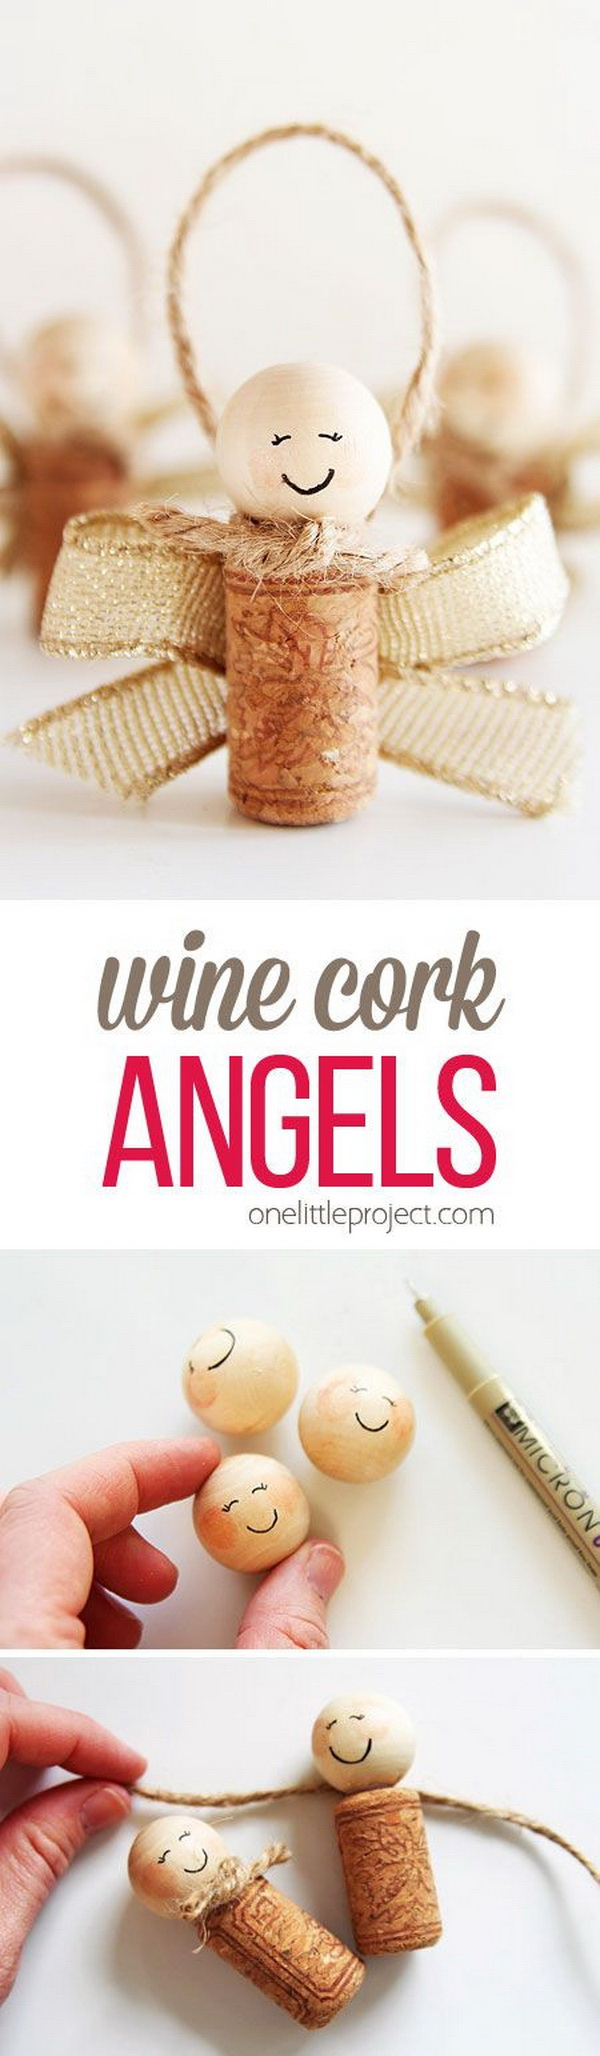 Wine Cork Angels. Easy and Fun DIY Christmas crafts for You and Your Kids to Have Fun.